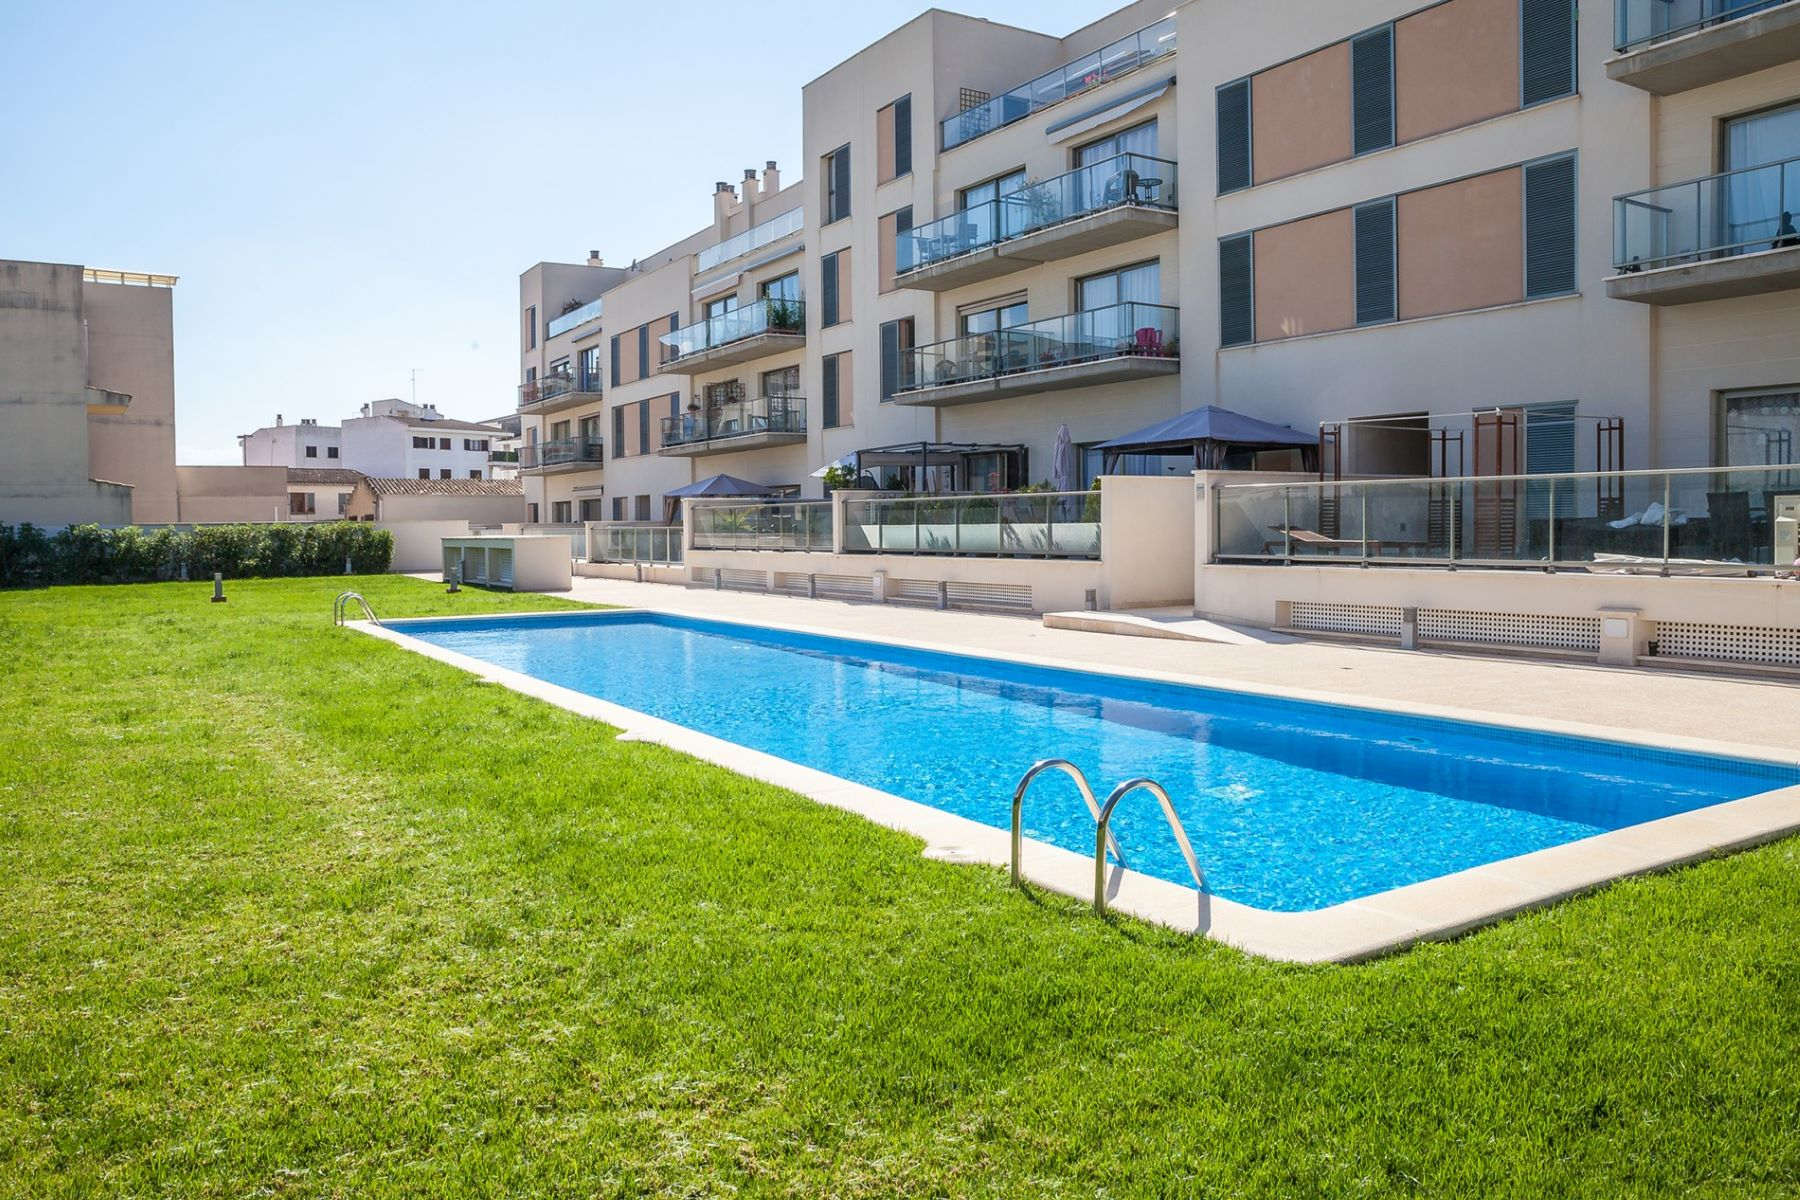 Single Family Home for Rent at Apartment in Llucmajor for rent Llucmajor, Mallorca, Spain